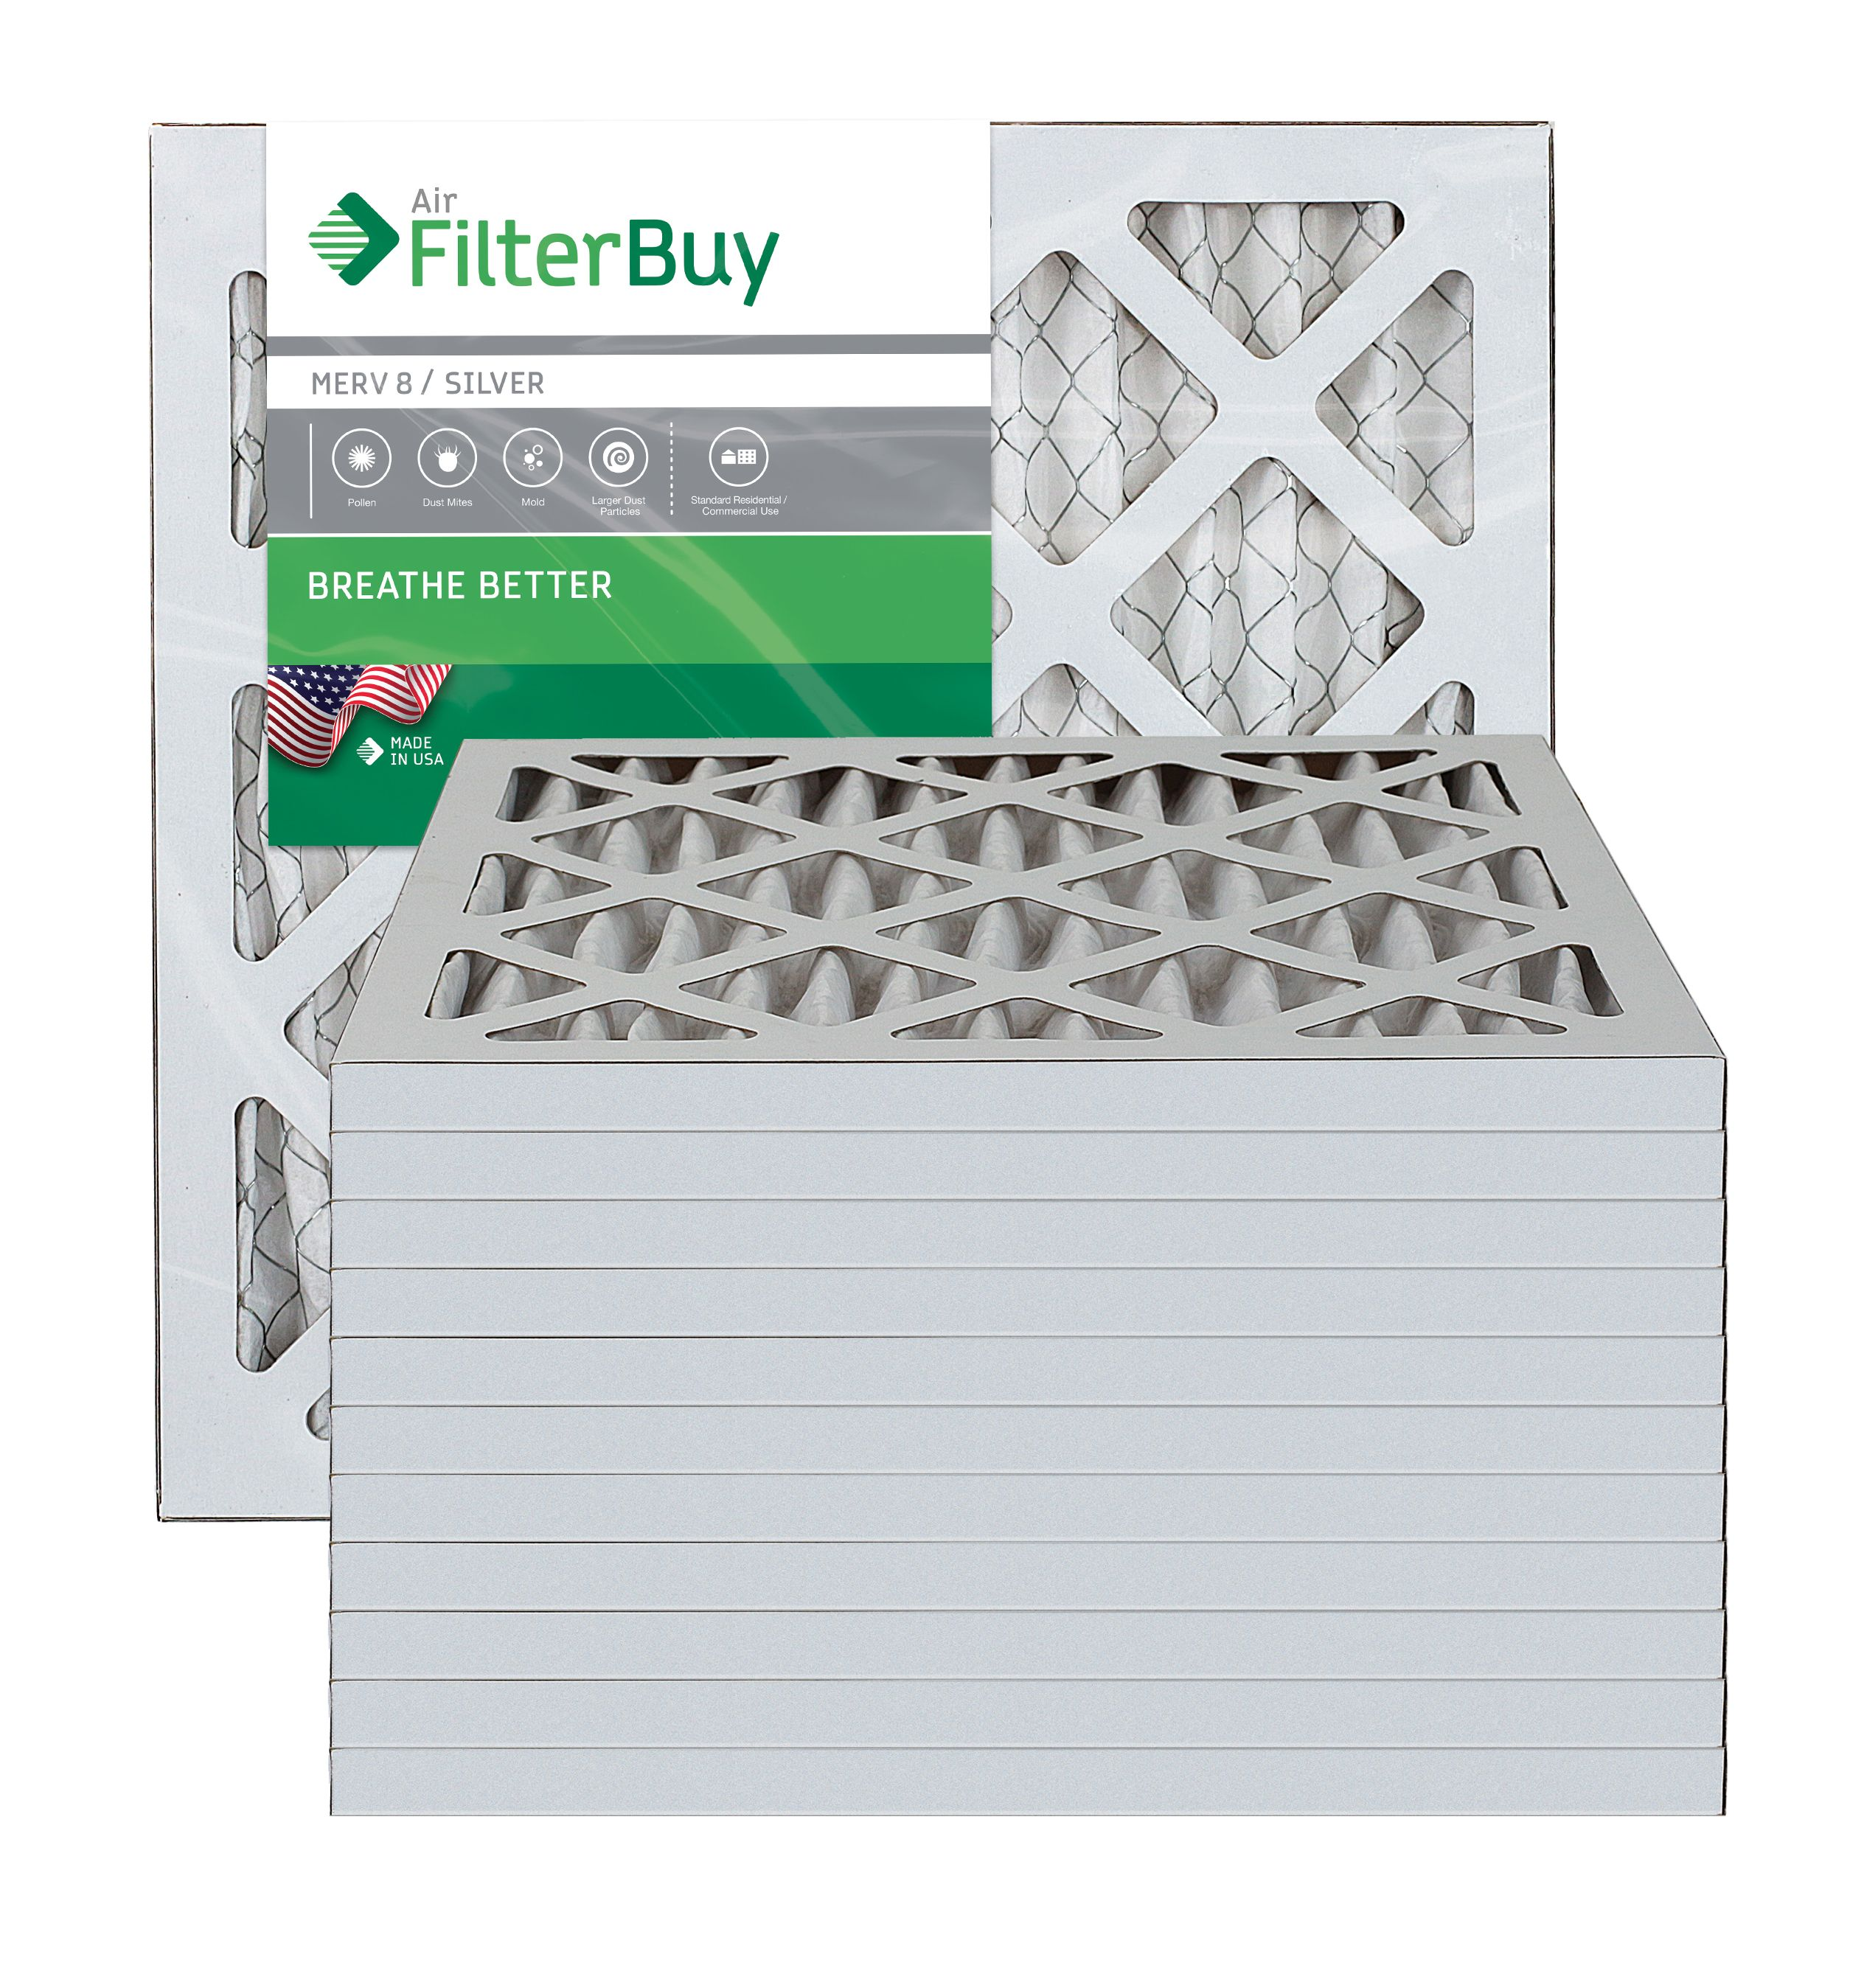 AFB Silver MERV 8 10x18x1 Pleated AC Furnace Air Filter. Pack of 12 Filters. 100% produced in the USA.